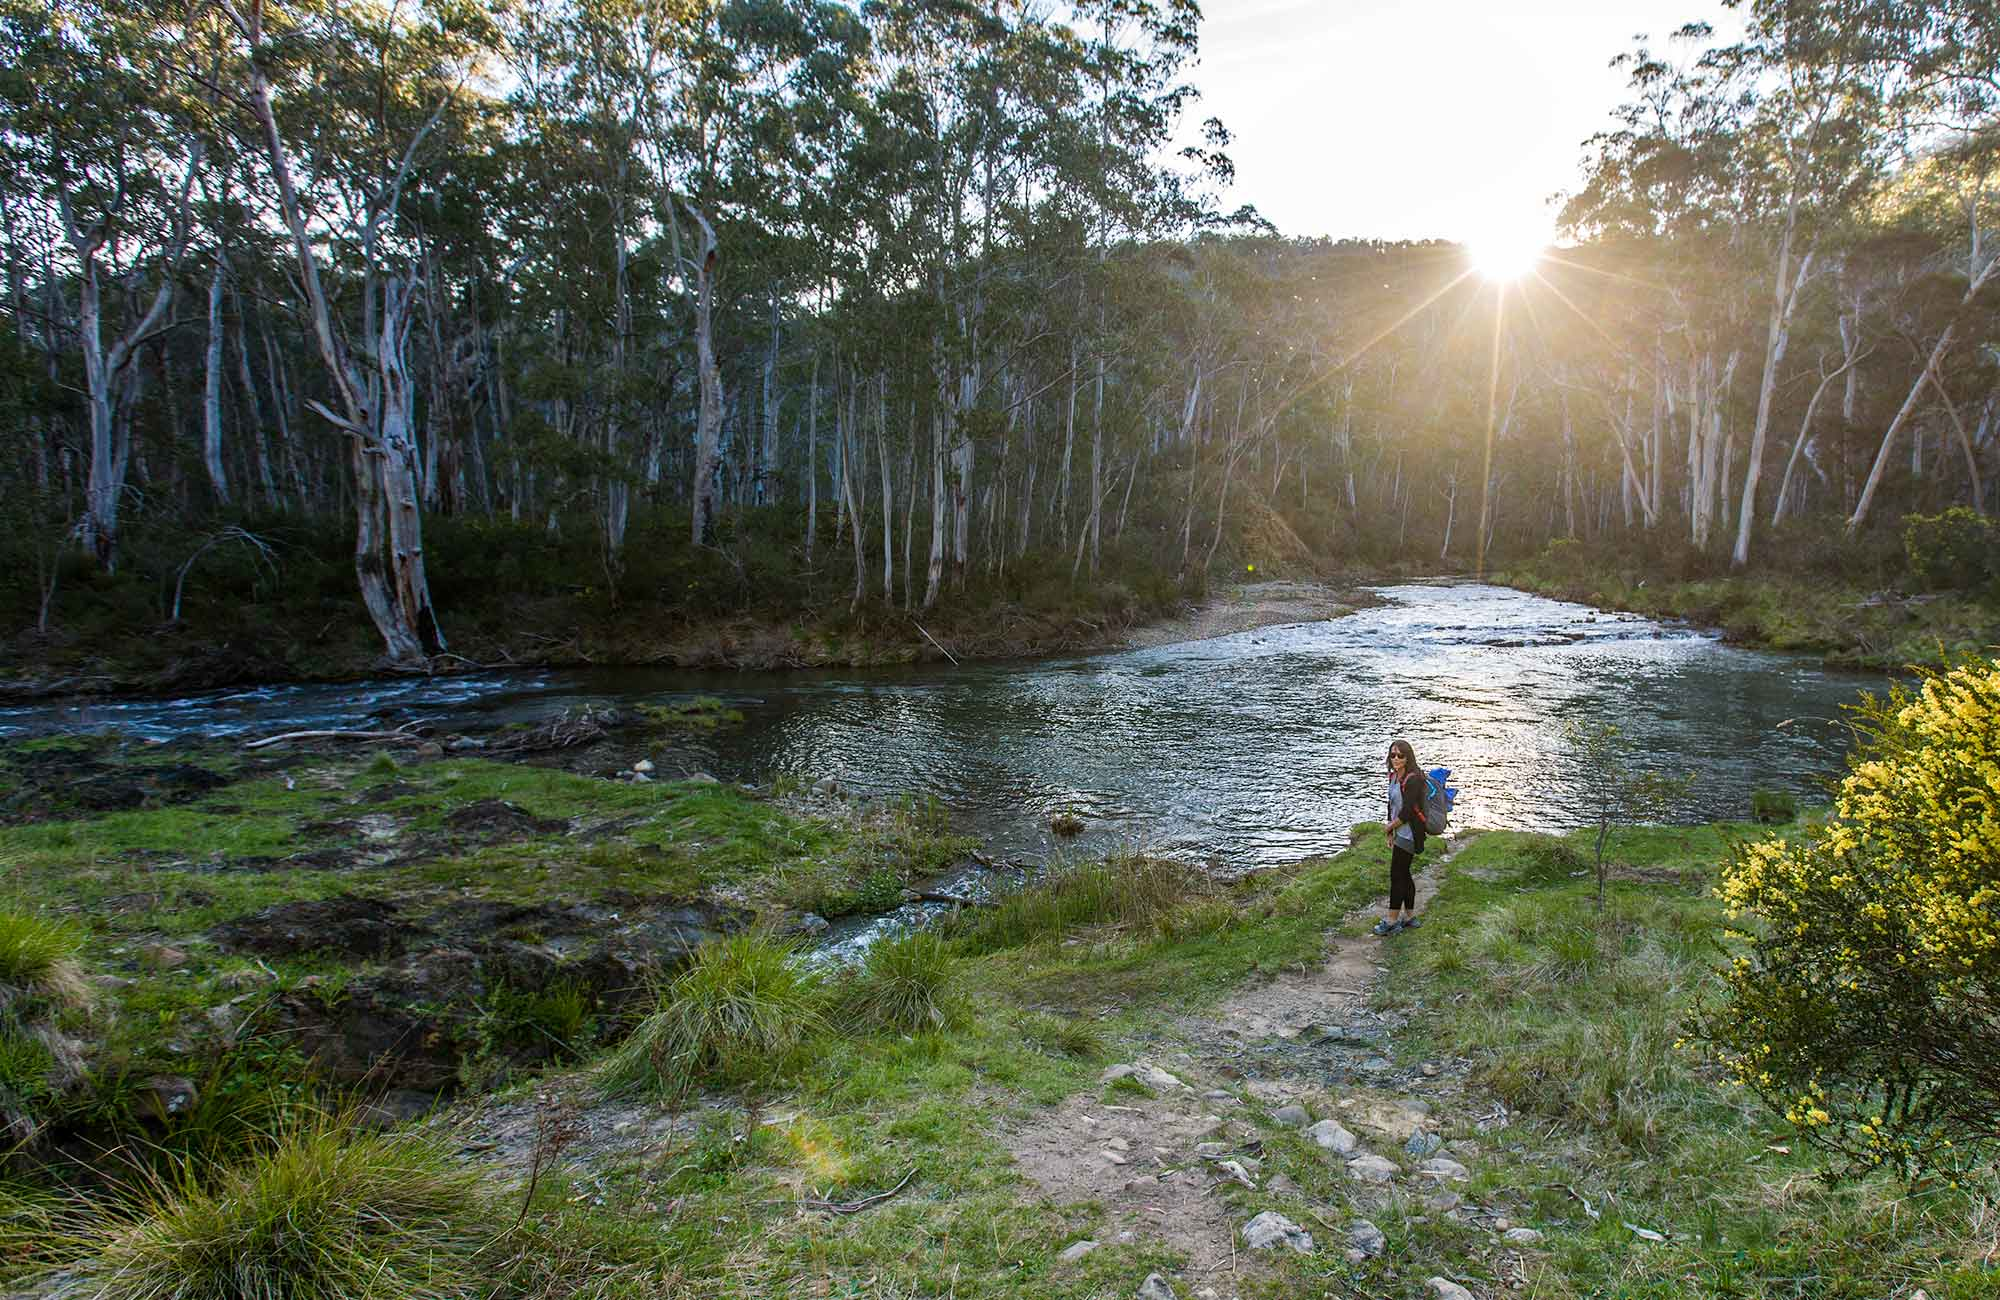 River walk, Kosciuszko National Park Kosciuszko National Park. Photo: Murray Vanderveer